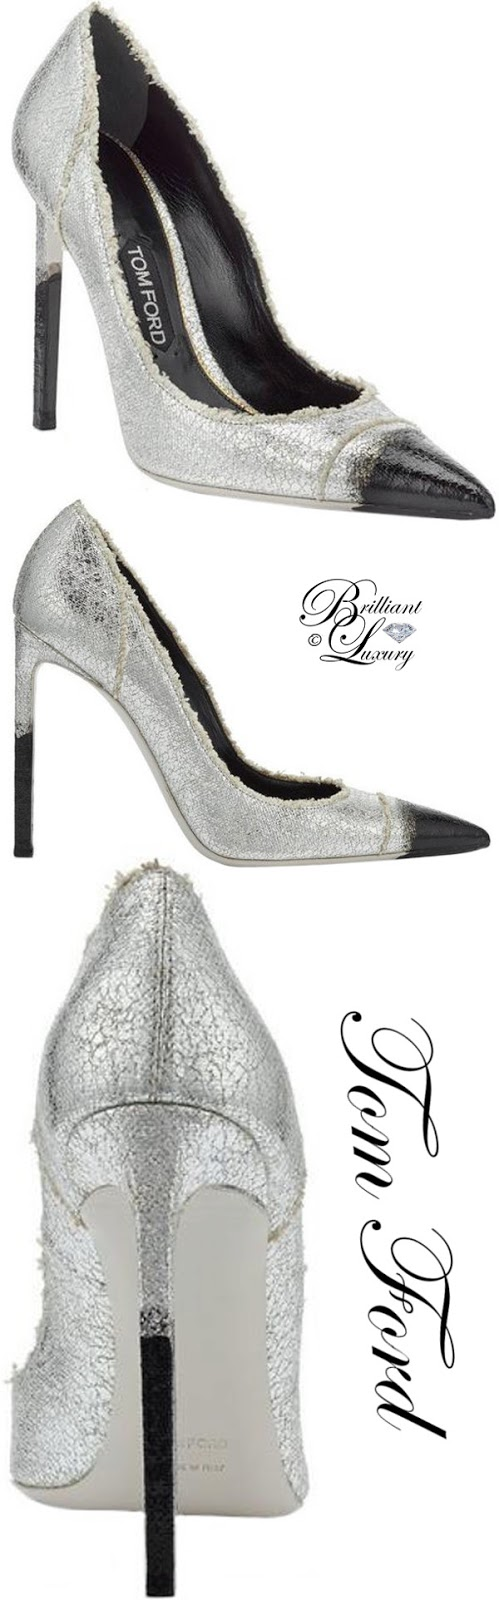 Brilliant Luxury ♦ Tom Ford frayed canvas pumps #silver